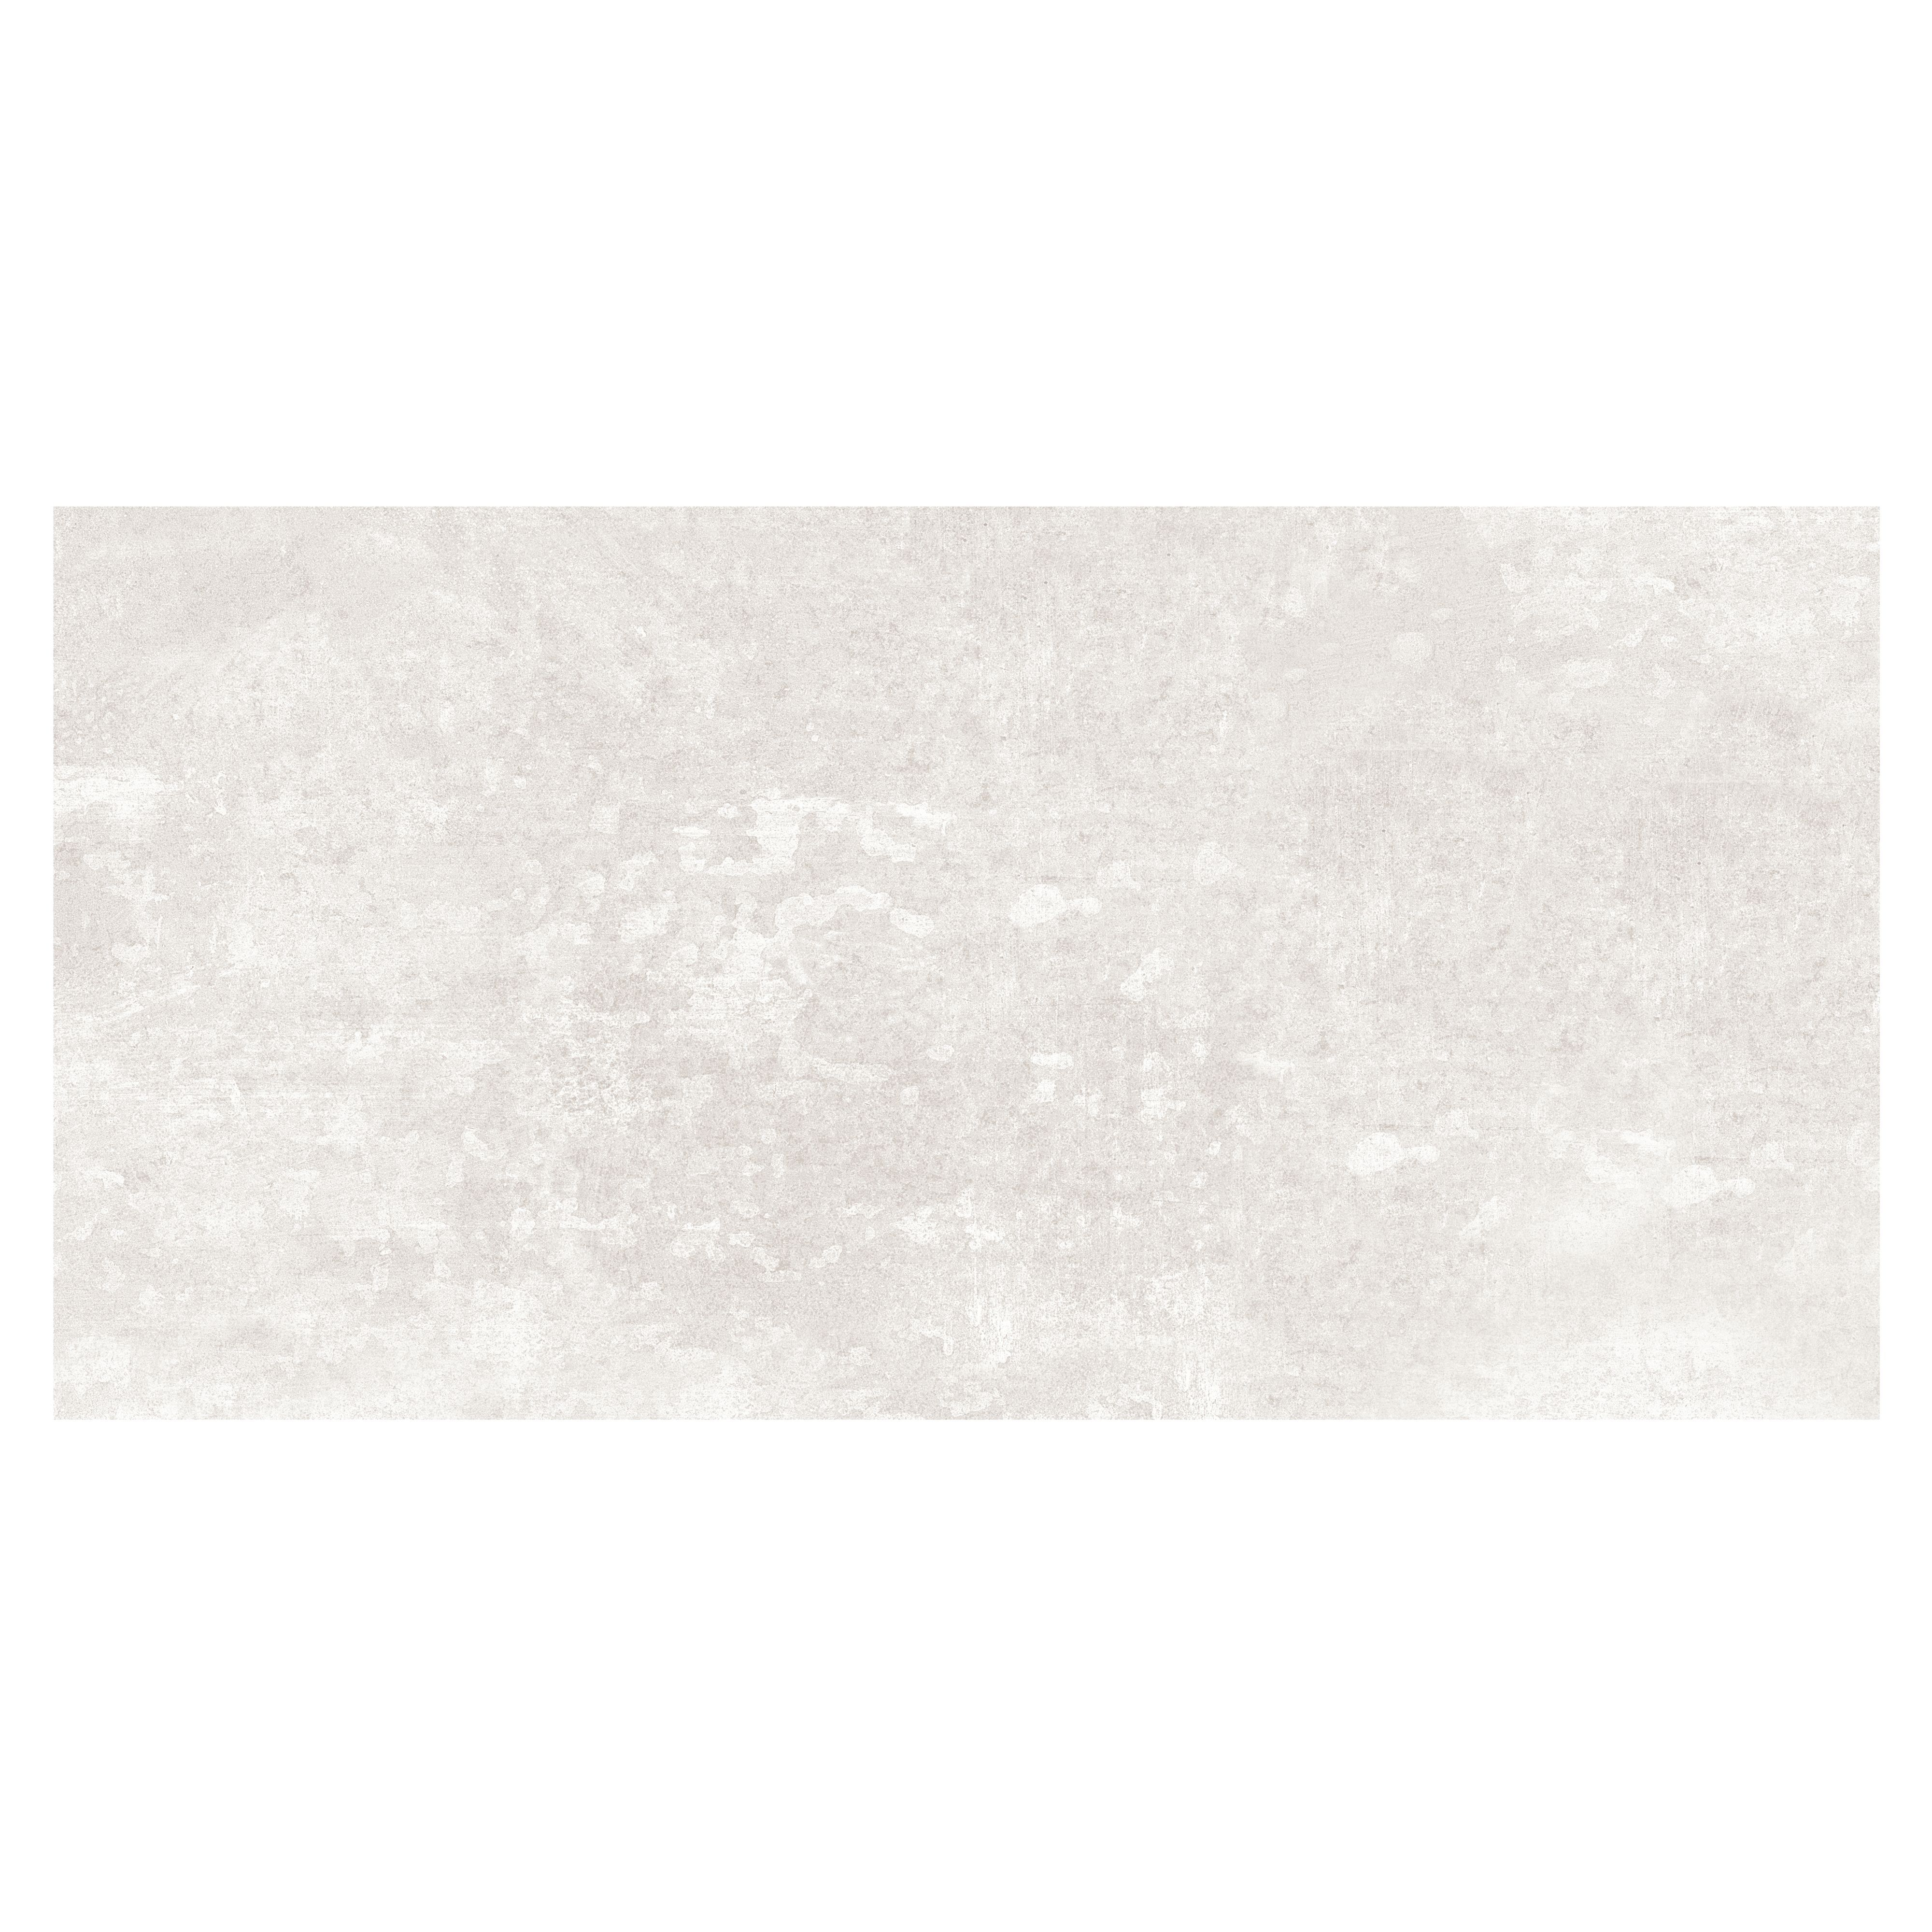 Urban White Stone Effect Ceramic Wall & Floor Tile, Pack Of 5, (l)600mm (w)300mm